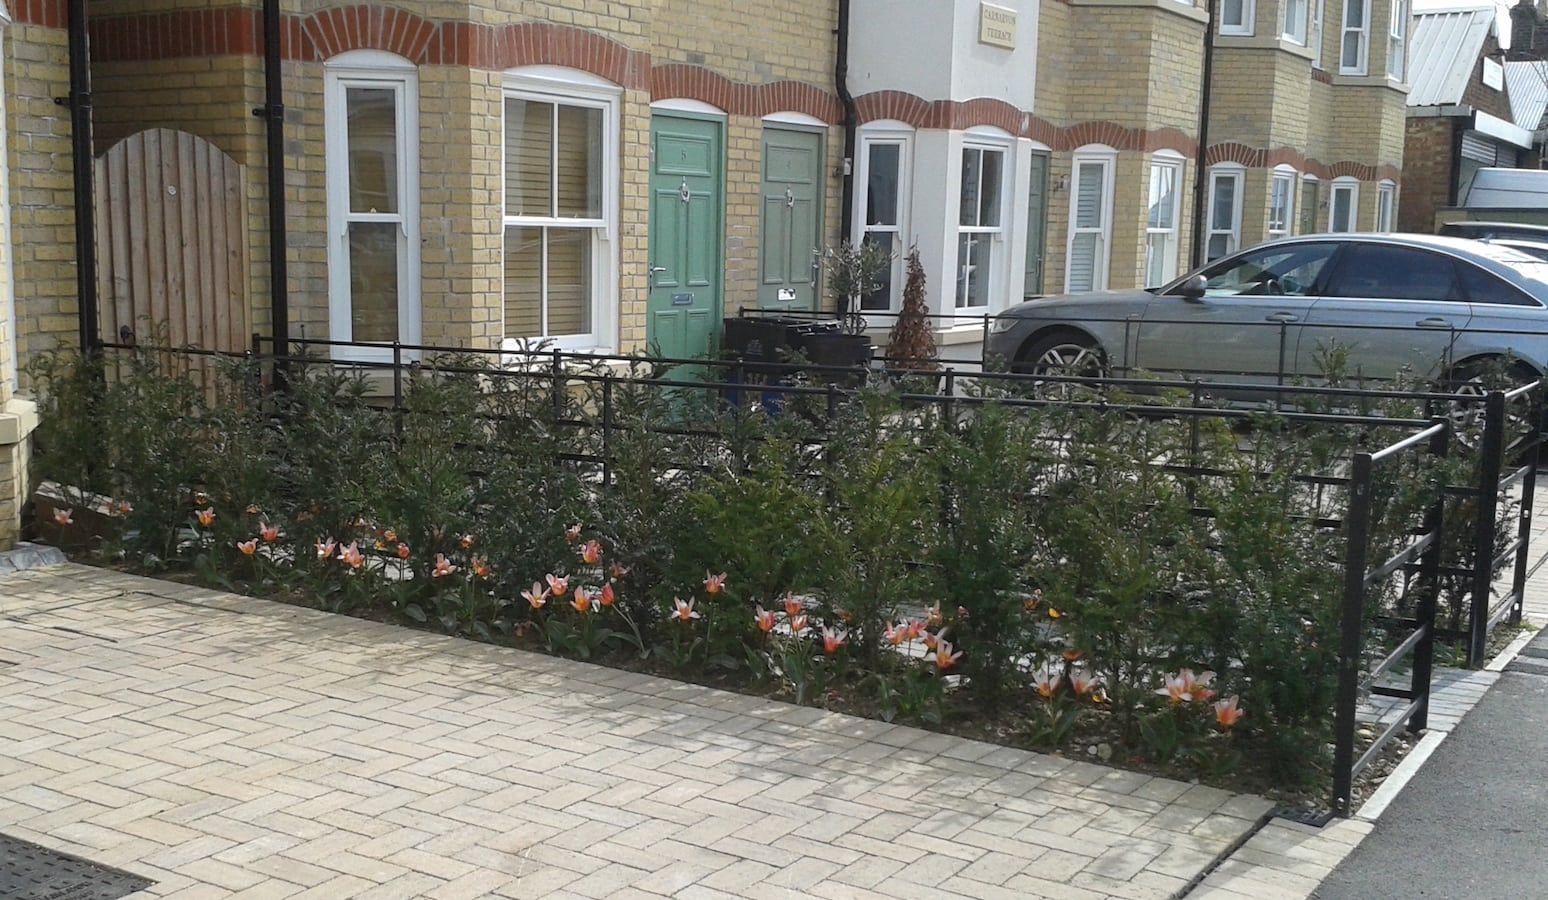 Custom-made Estate Fencing, Carnarvon Villas, South Woodford, London E18